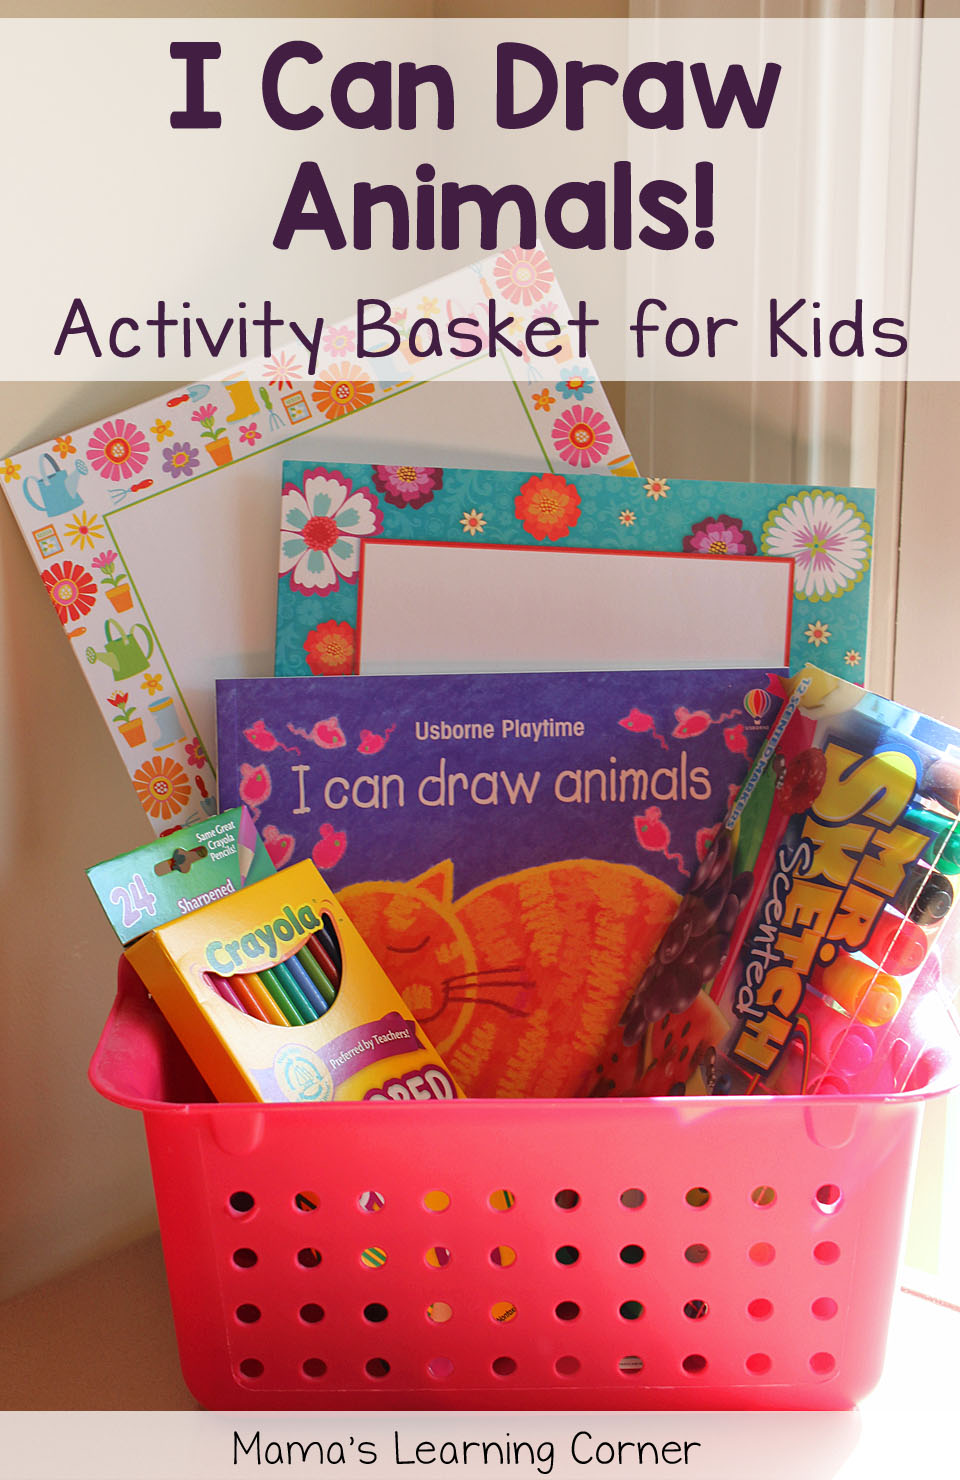 Activity Baskets for Kids:  I Can Draw Animals